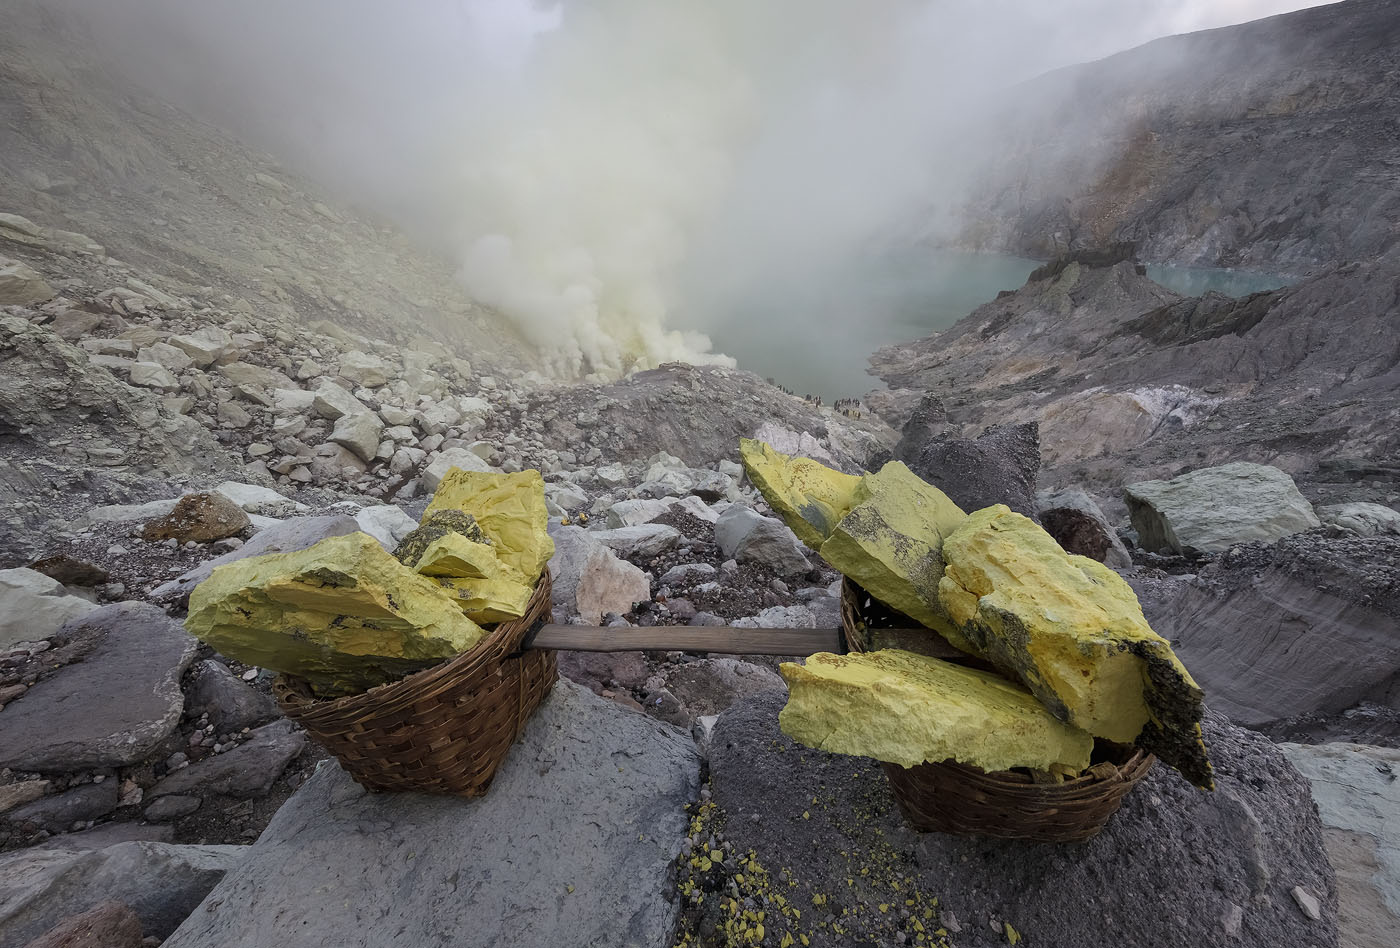 An 80 kg load of sulfur inside Ijen's crater